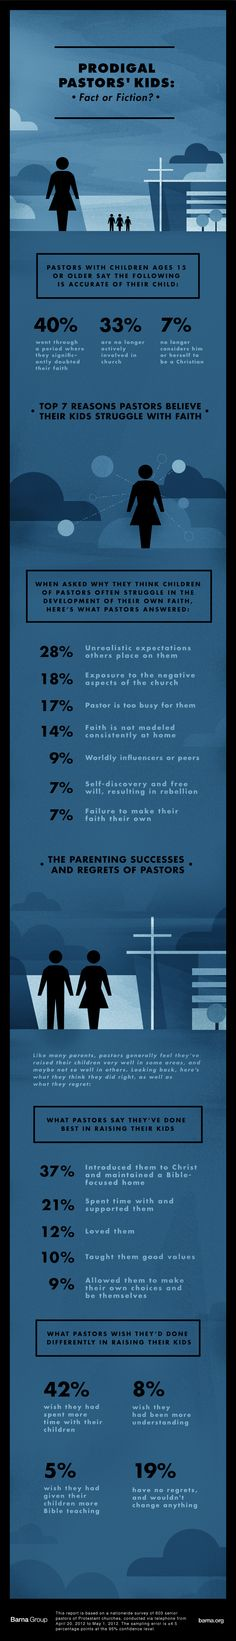 Prodigal Pastors' Kids: Fact or Fiction?  #BarnaGroup present their research on PK's and what Parent-Pastors learned